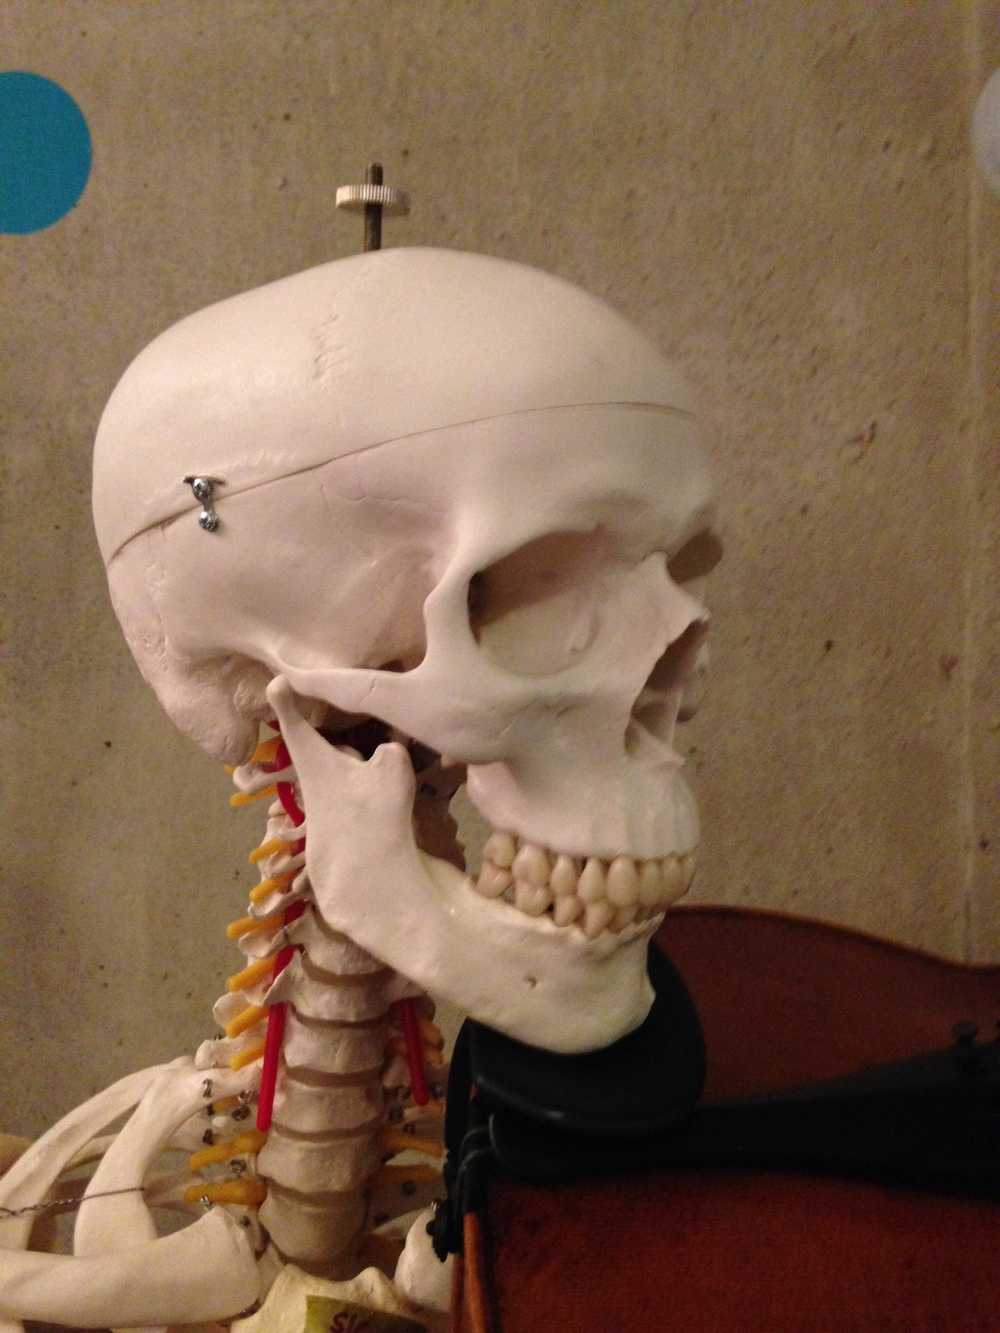 The way we hold our instruments causes constant adaptation in our bodies. A lifetime of poor neck positions may result in undesirable structural adaptations!